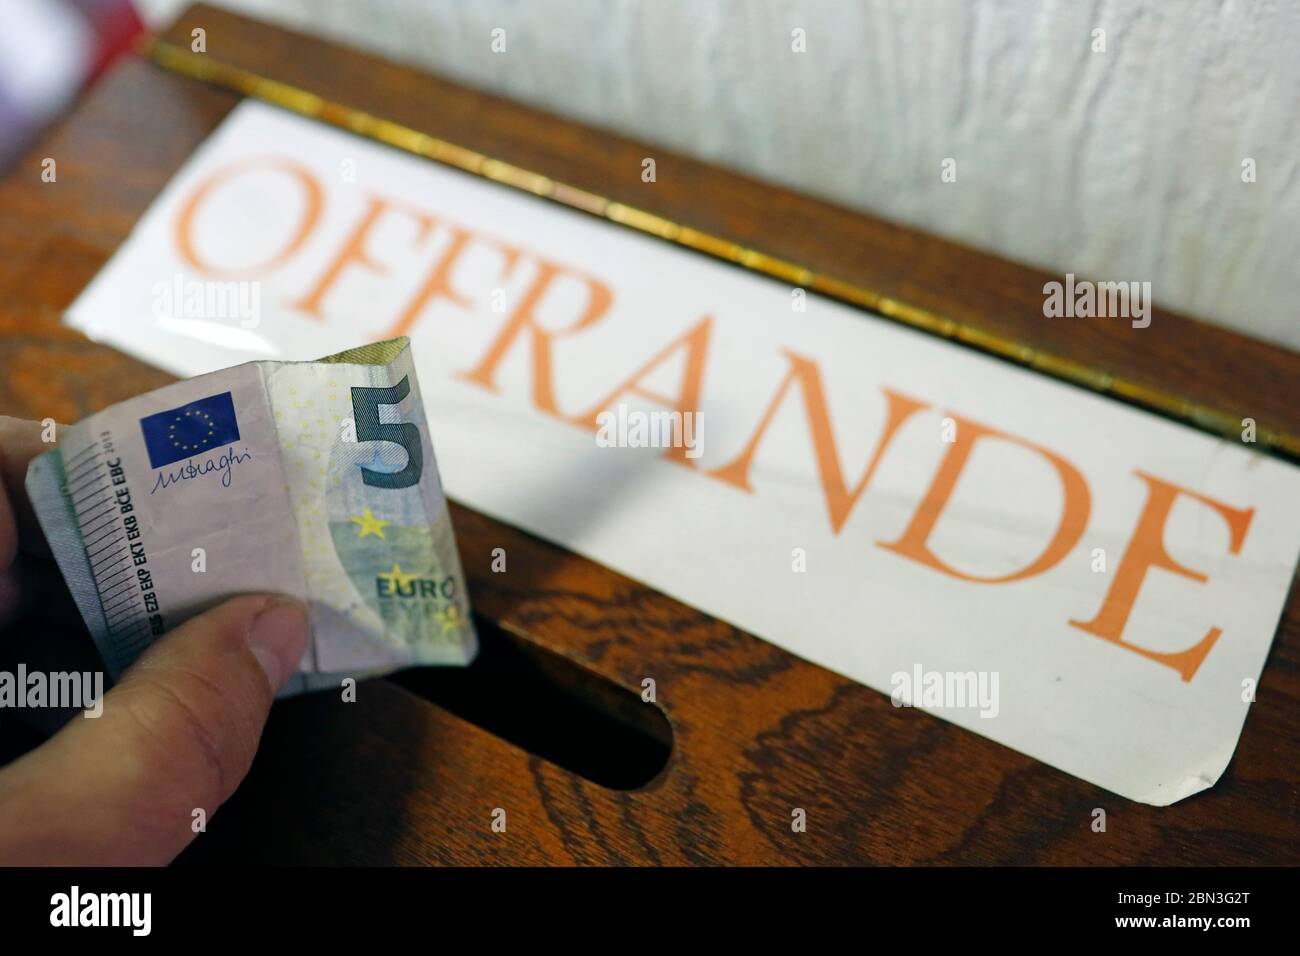 Protestant Evangelical Church. Offerings box. Cluses. France. Stock Photo